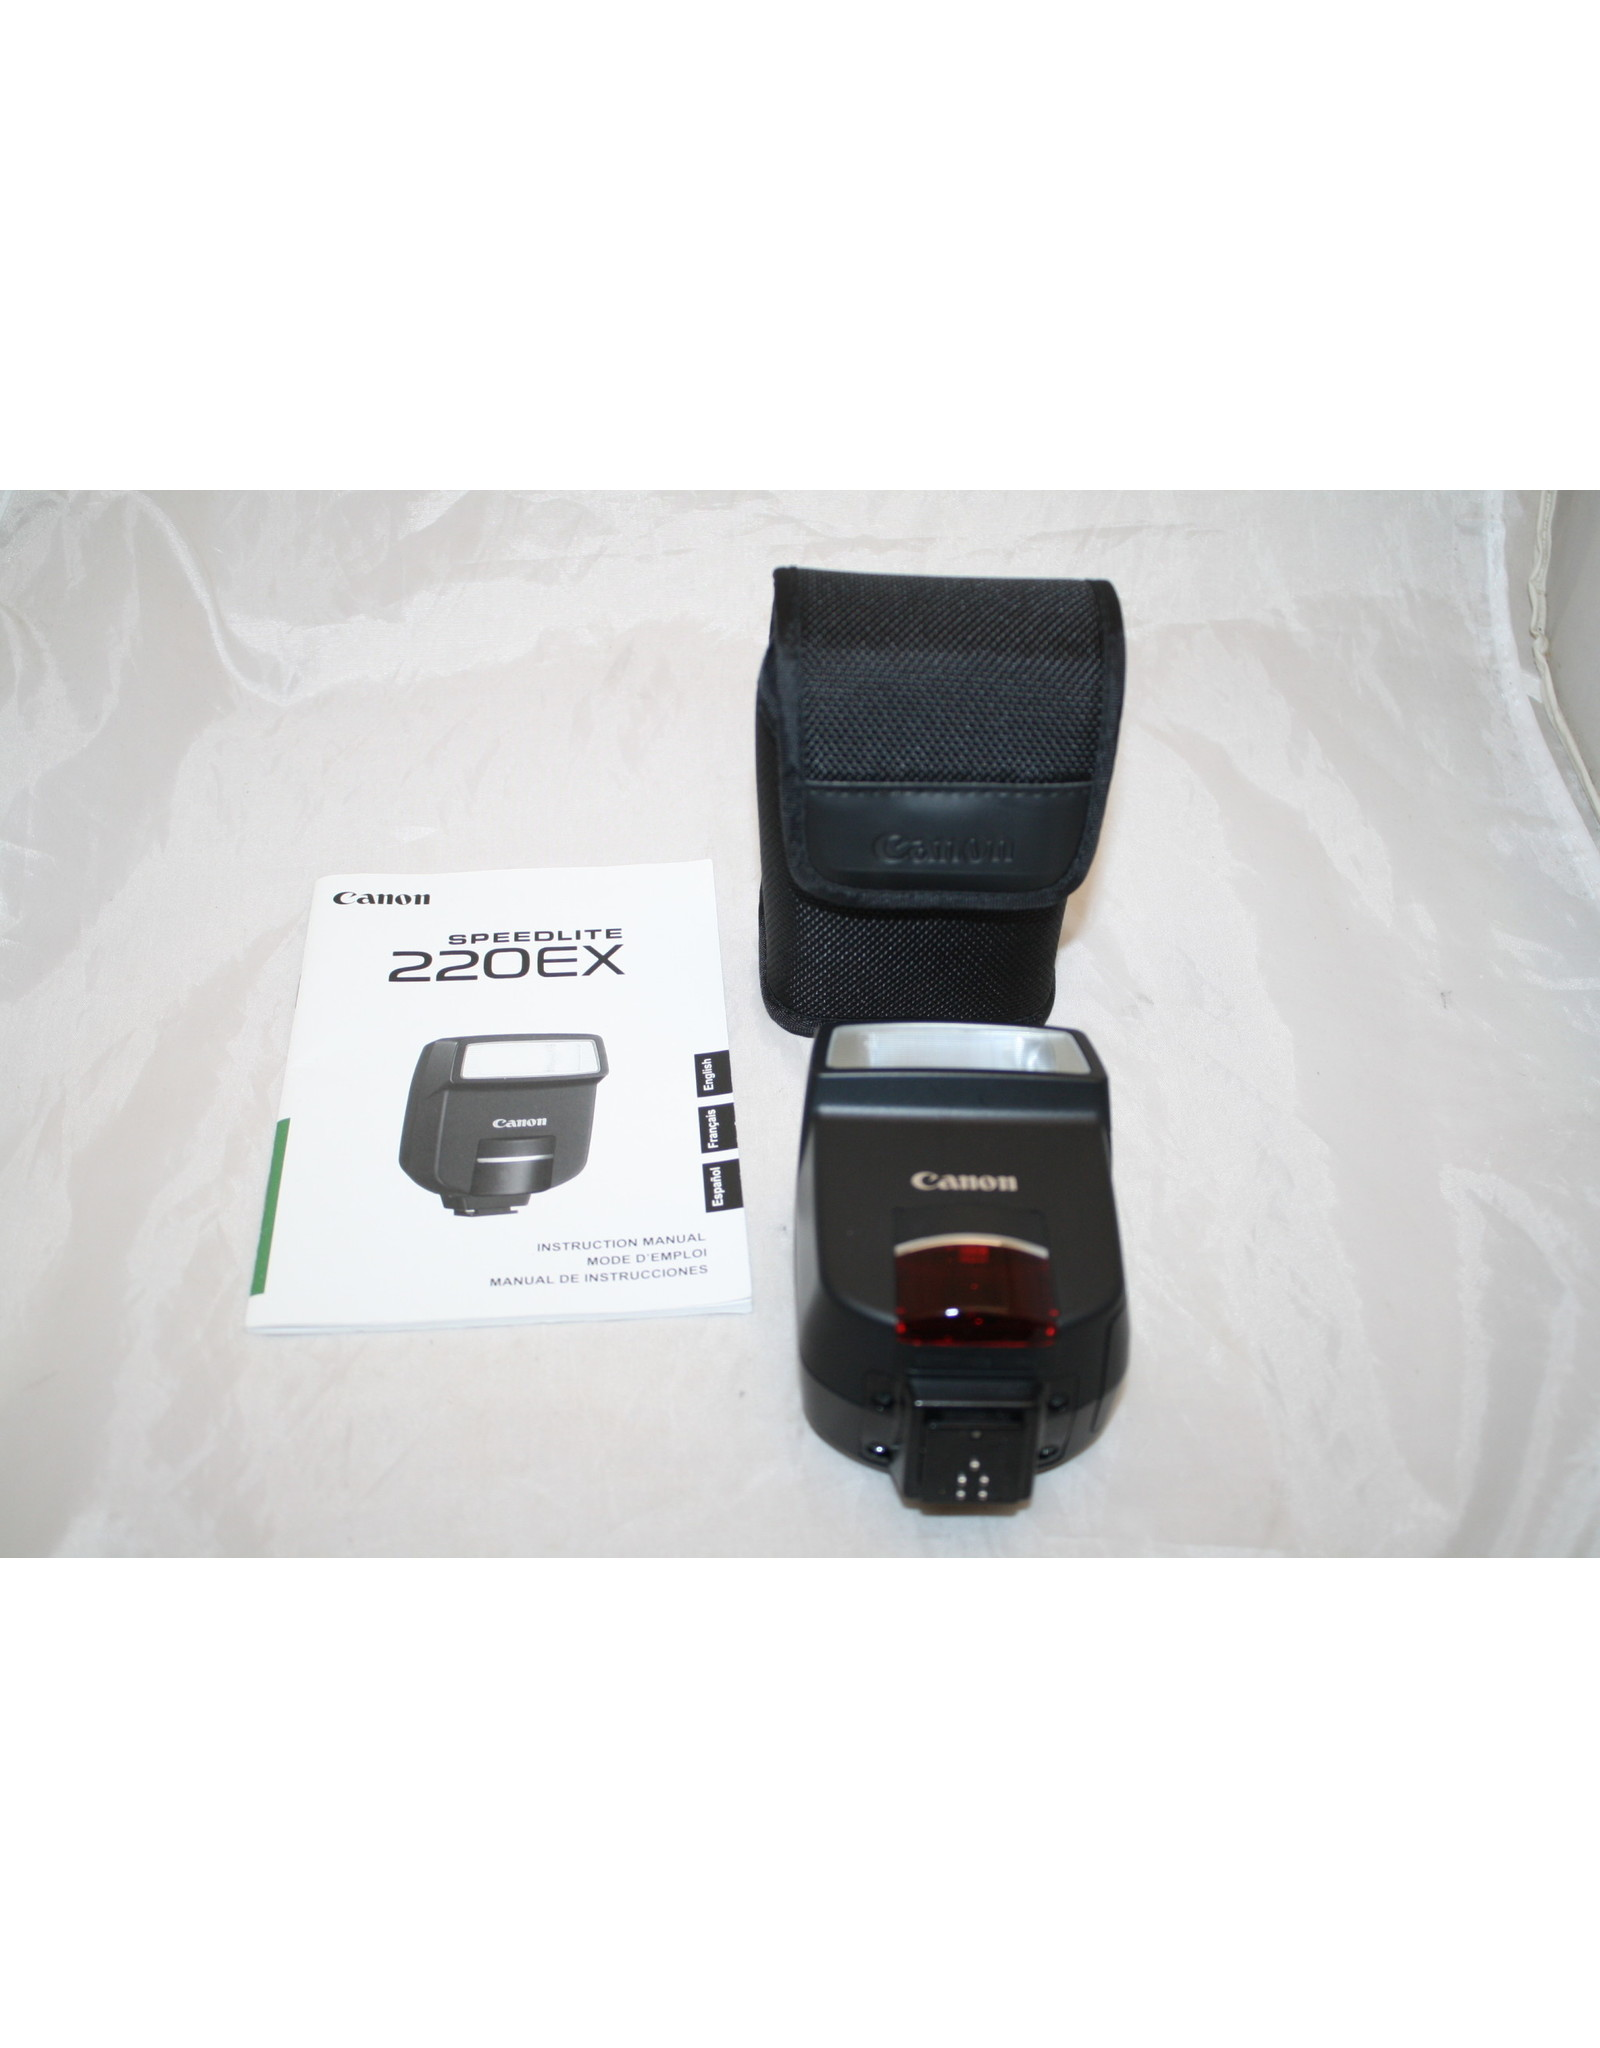 Canon Speedlite 220EX Shoe Mount Flash